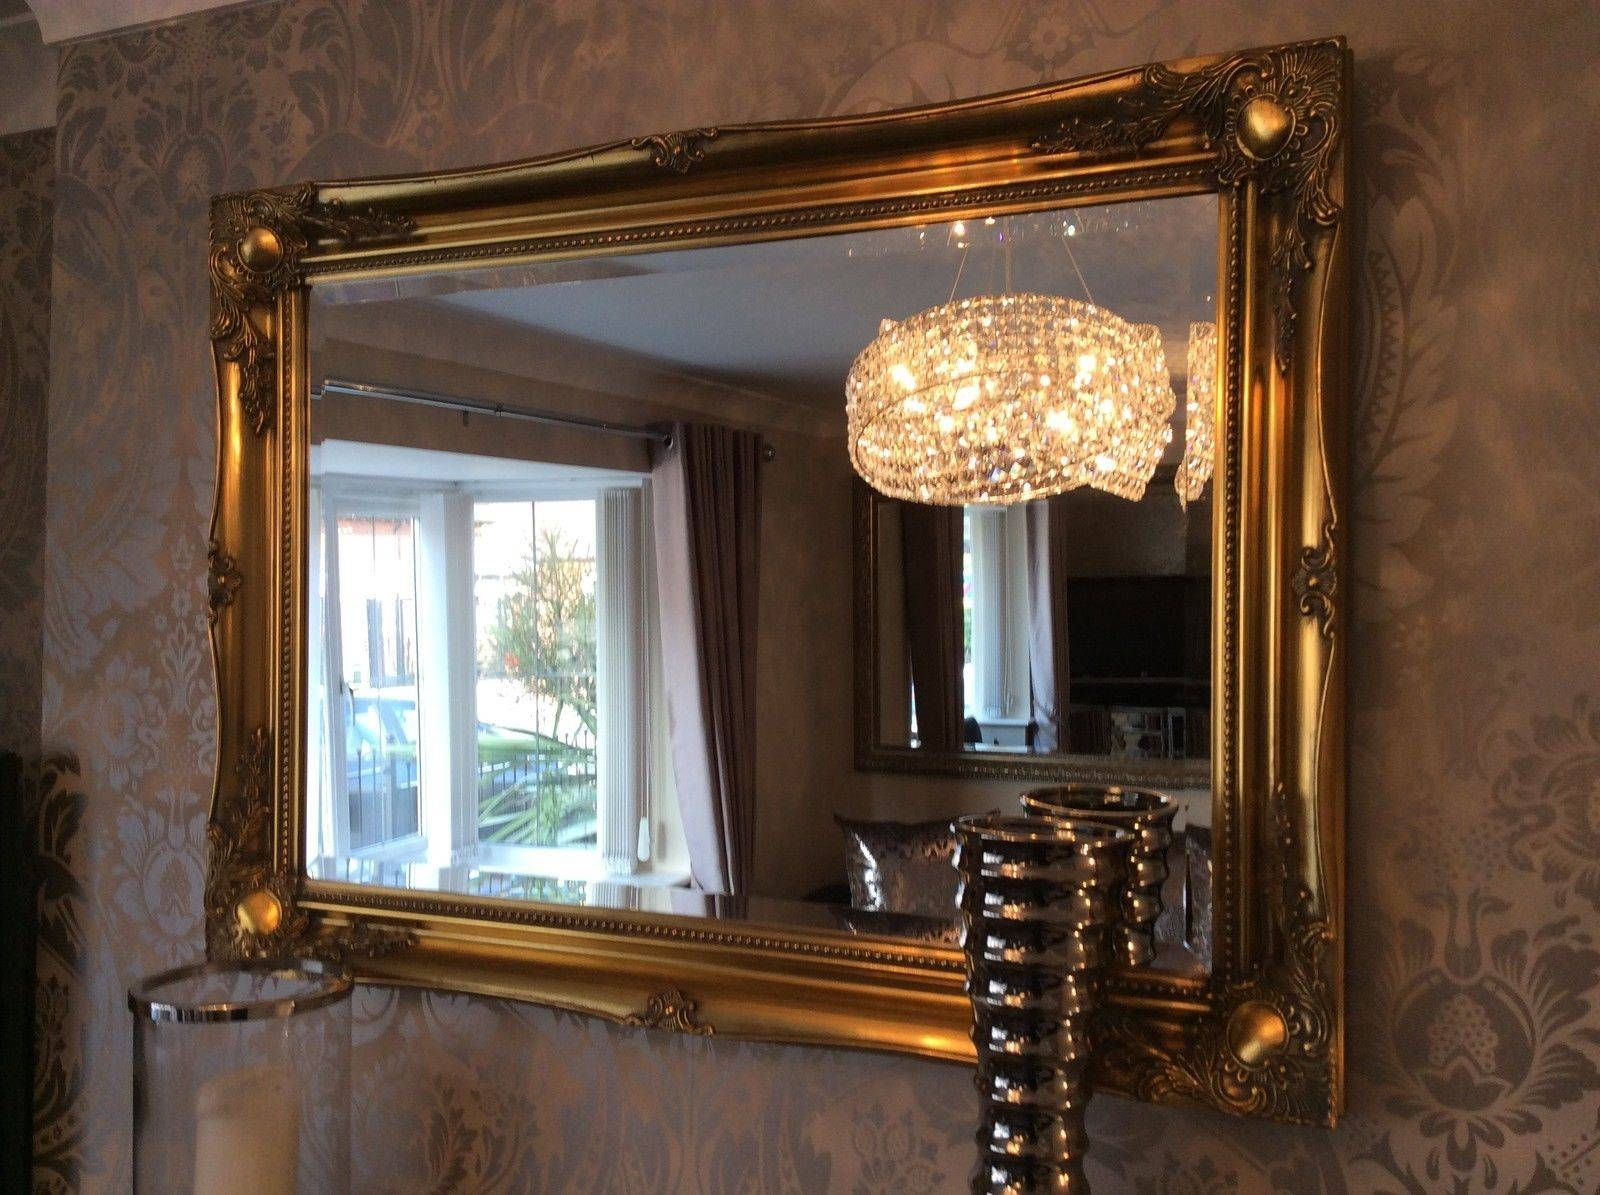 Decorative Gold Mirrors. Gold Decorative Framed Bevelled Wall within Large Ornate Mirrors for Wall (Image 6 of 25)